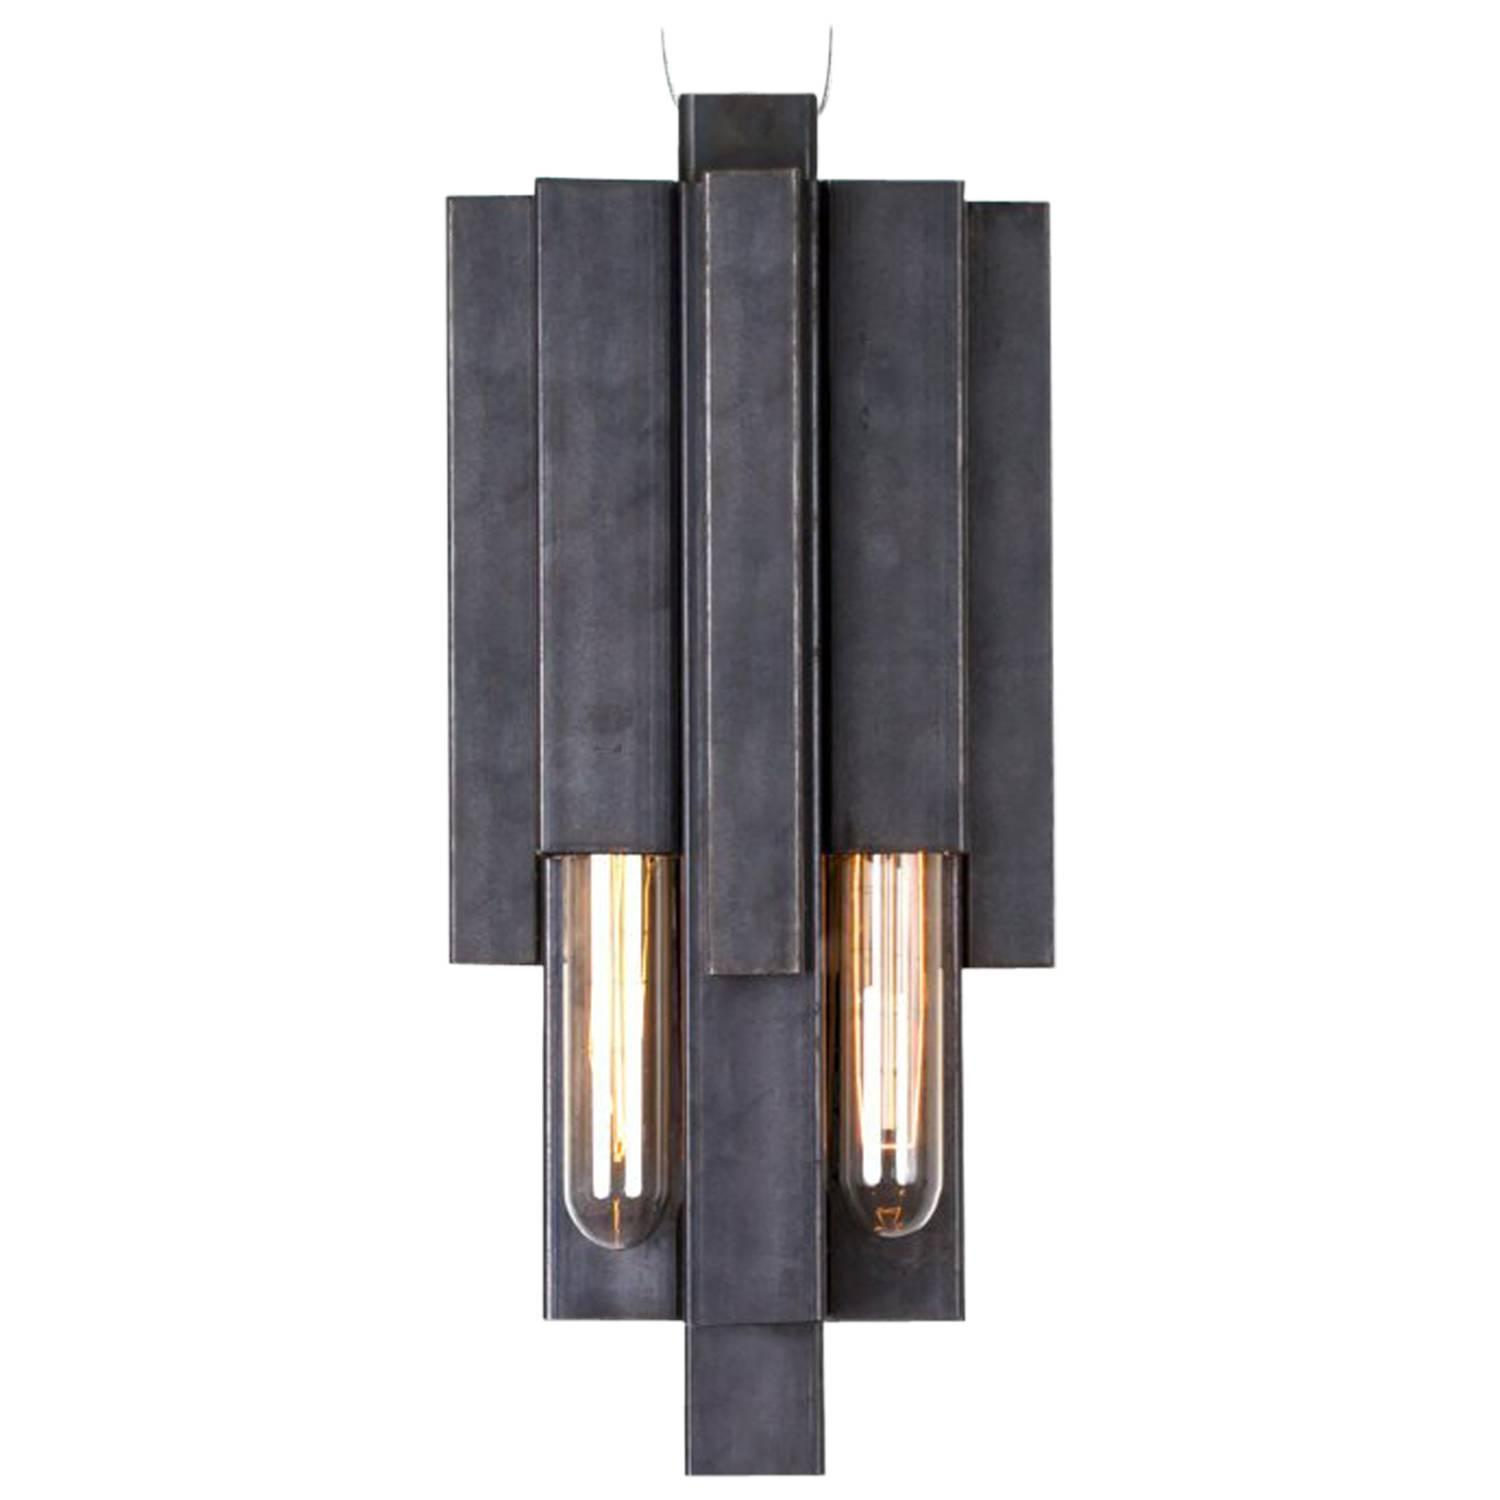 glass modern offers mid lighting stunning century wood of stylish archived chandelier size category whimsy full brass on chandeliers